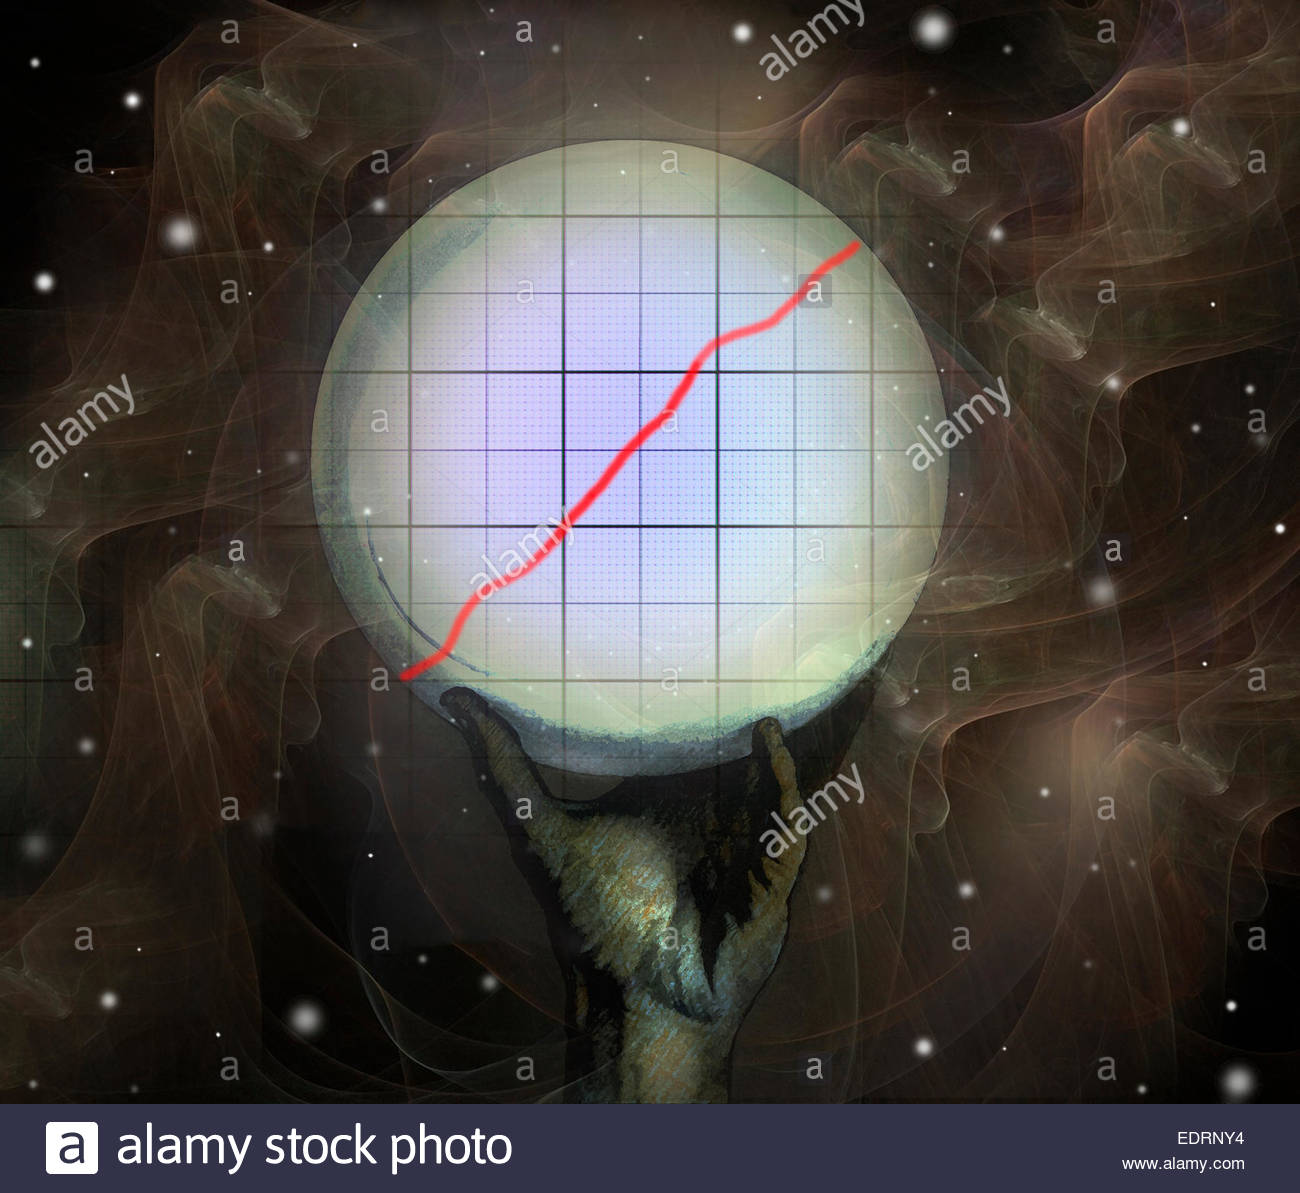 Crystal ball predicting growth in rising line graph - Stock Image